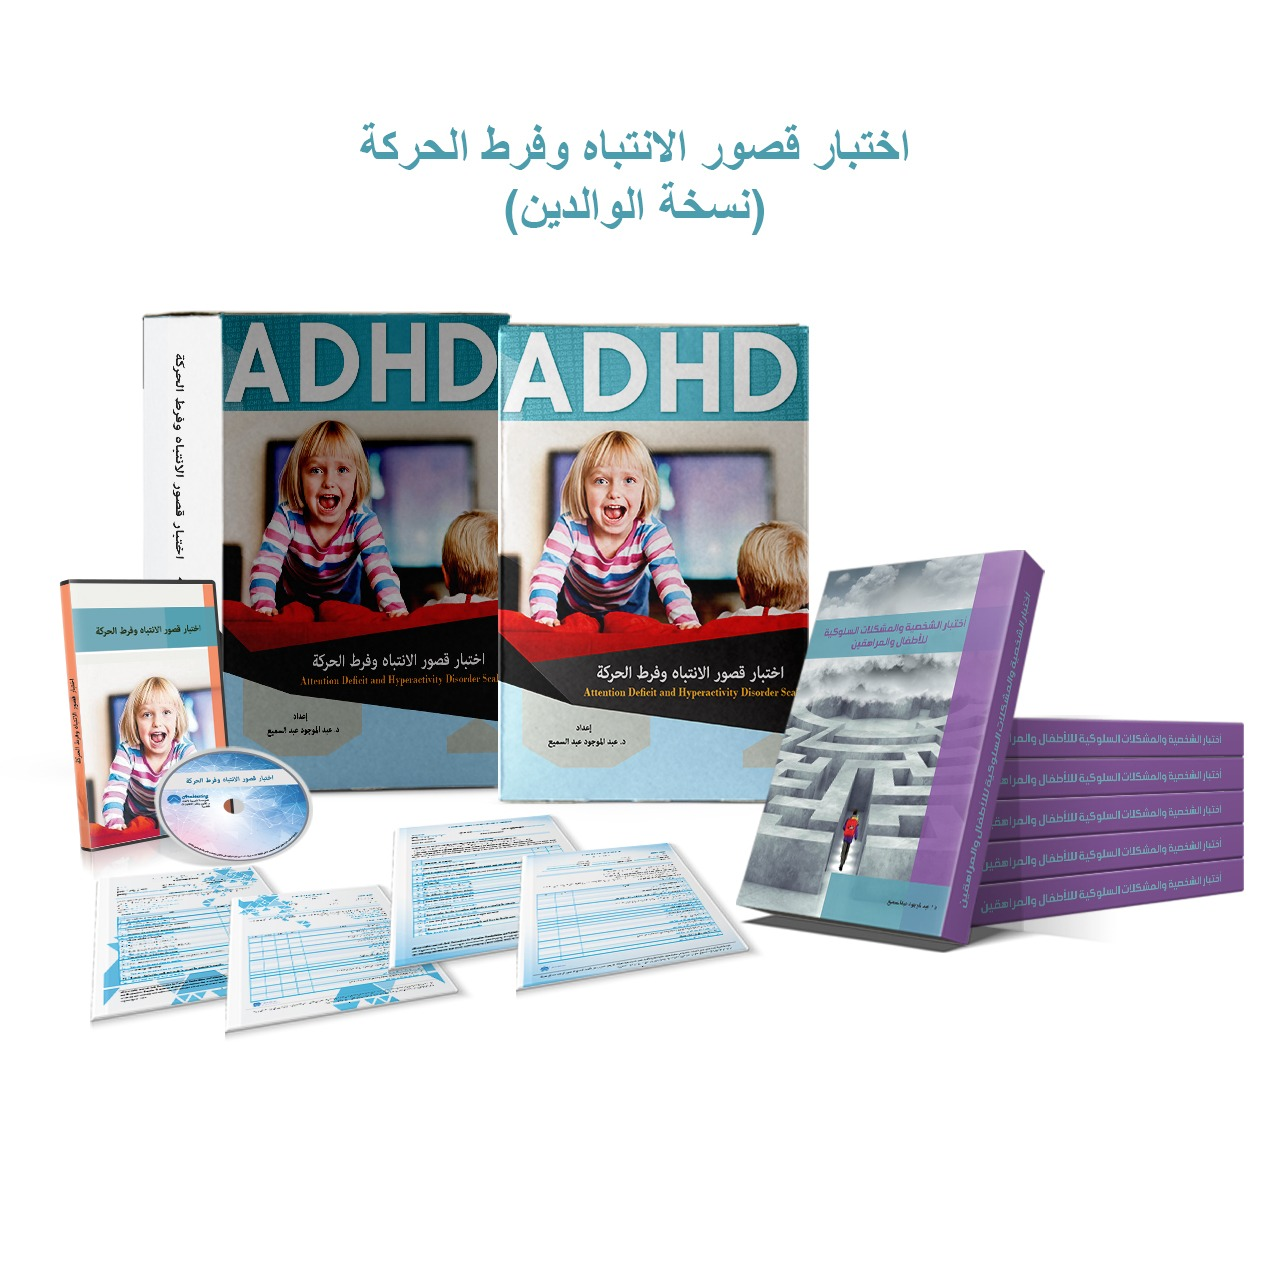 attention-deficit-hyperactivity-disorder-scale-parents-version